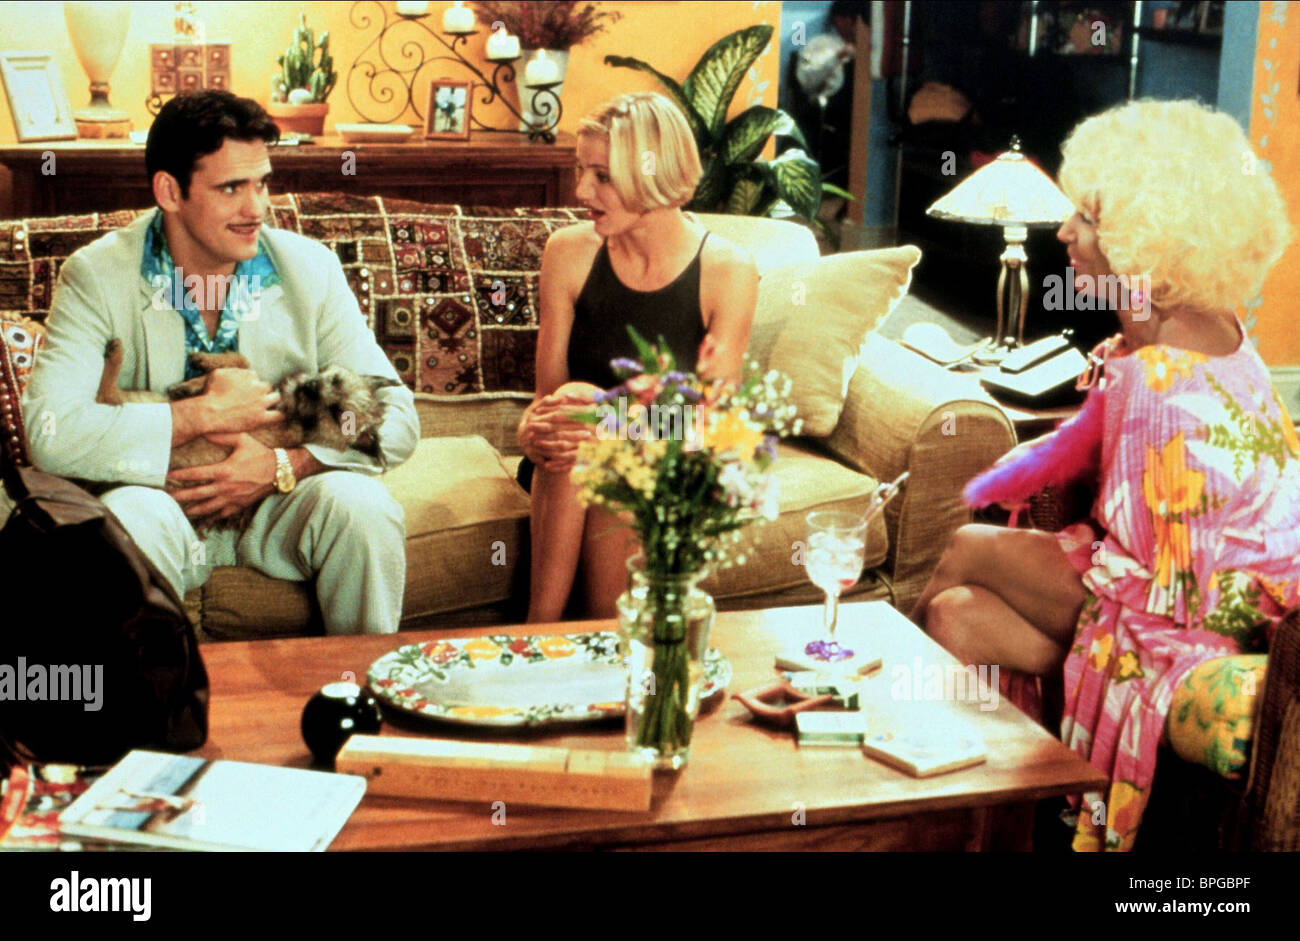 MATT DILLON CAMERON DIAZ LIN SHAYE THERE'S SOMETHING ABOUT MARY (1998) - Stock Image